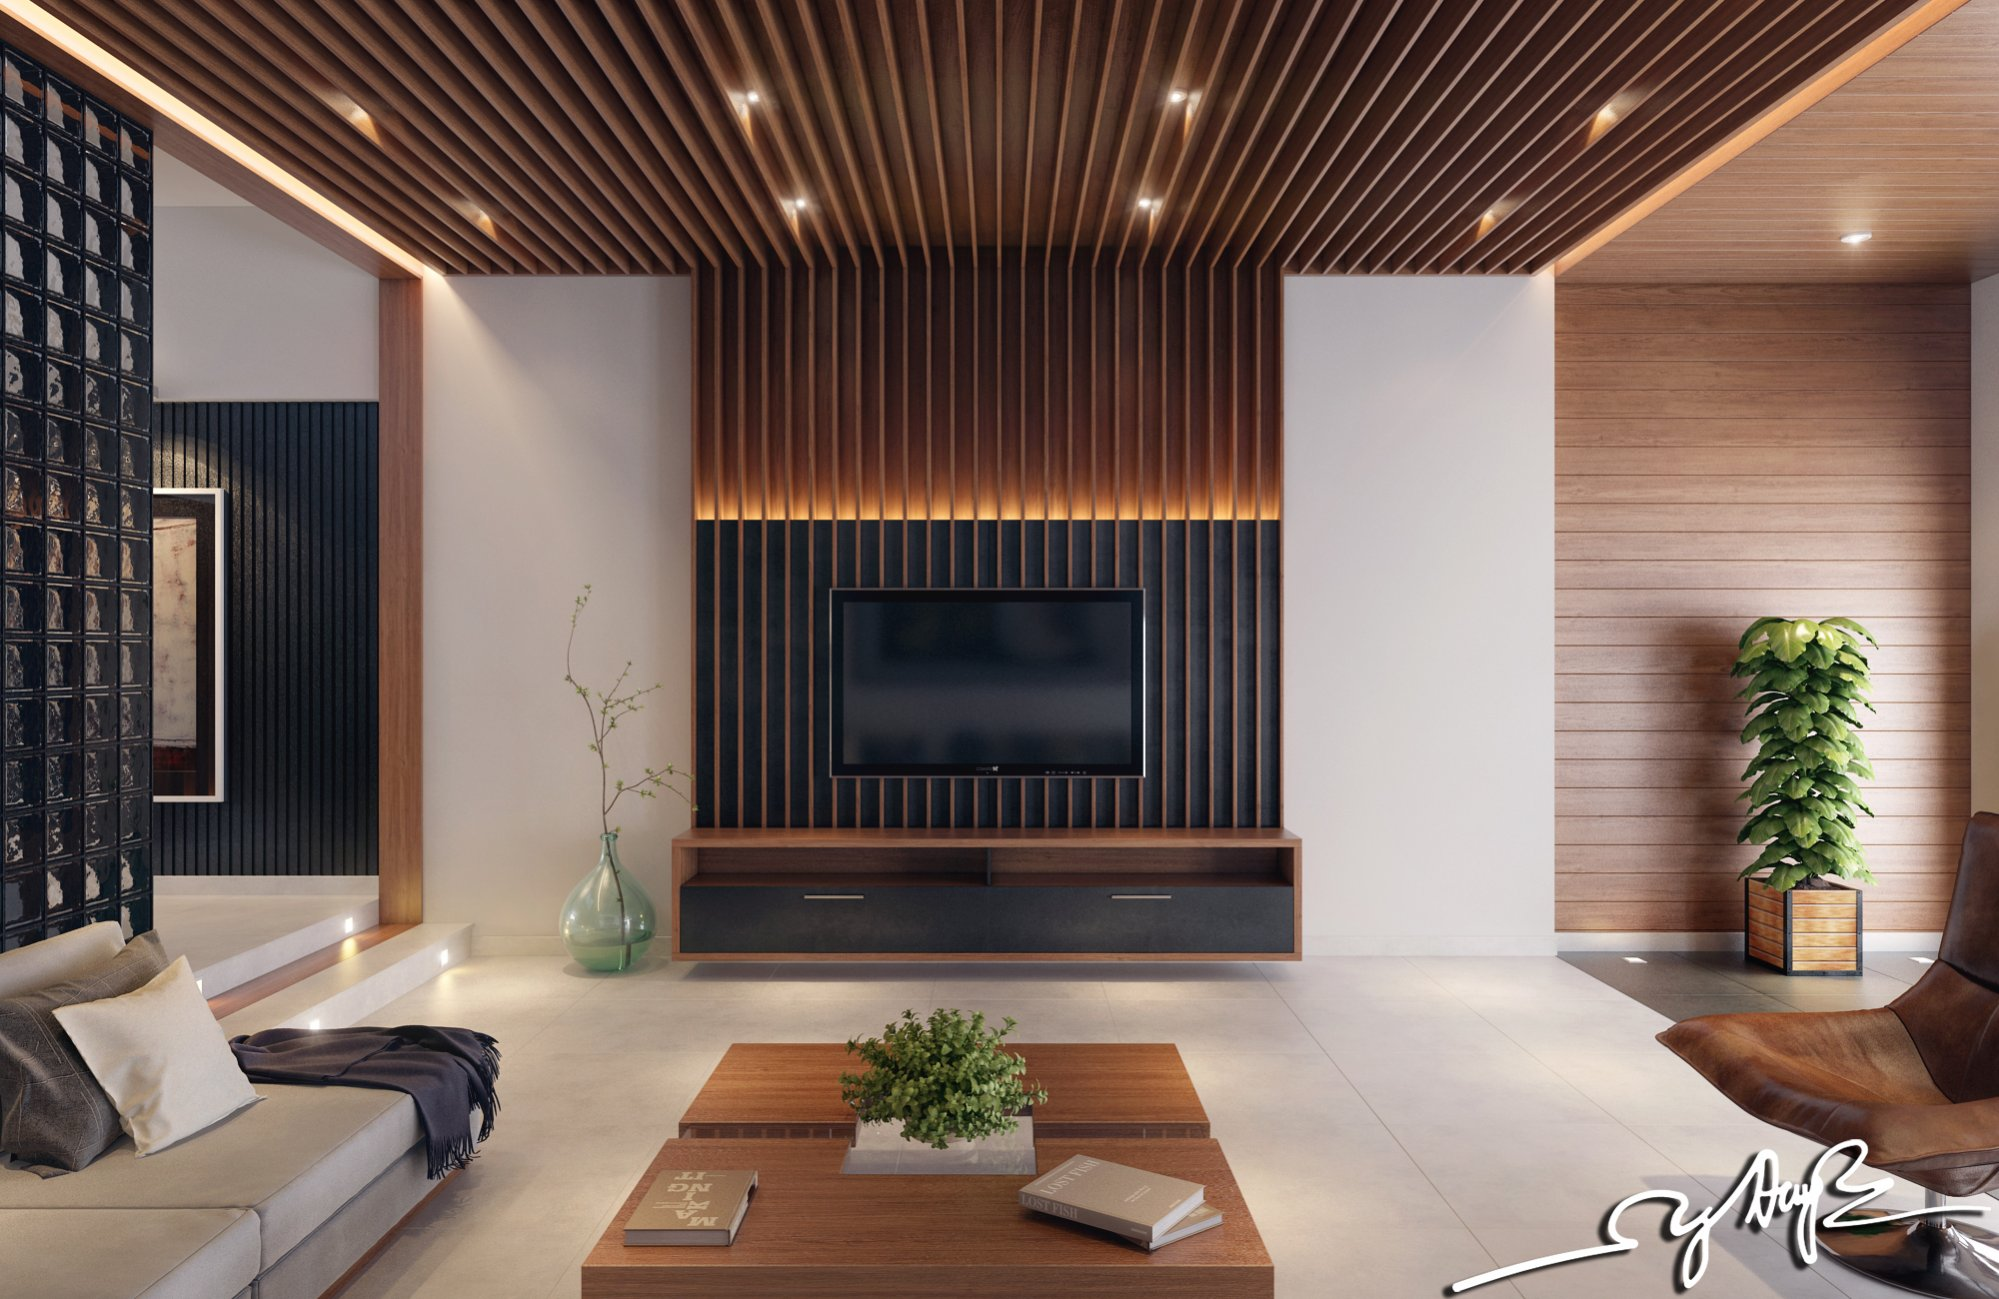 An open plan concept with wood interior design style